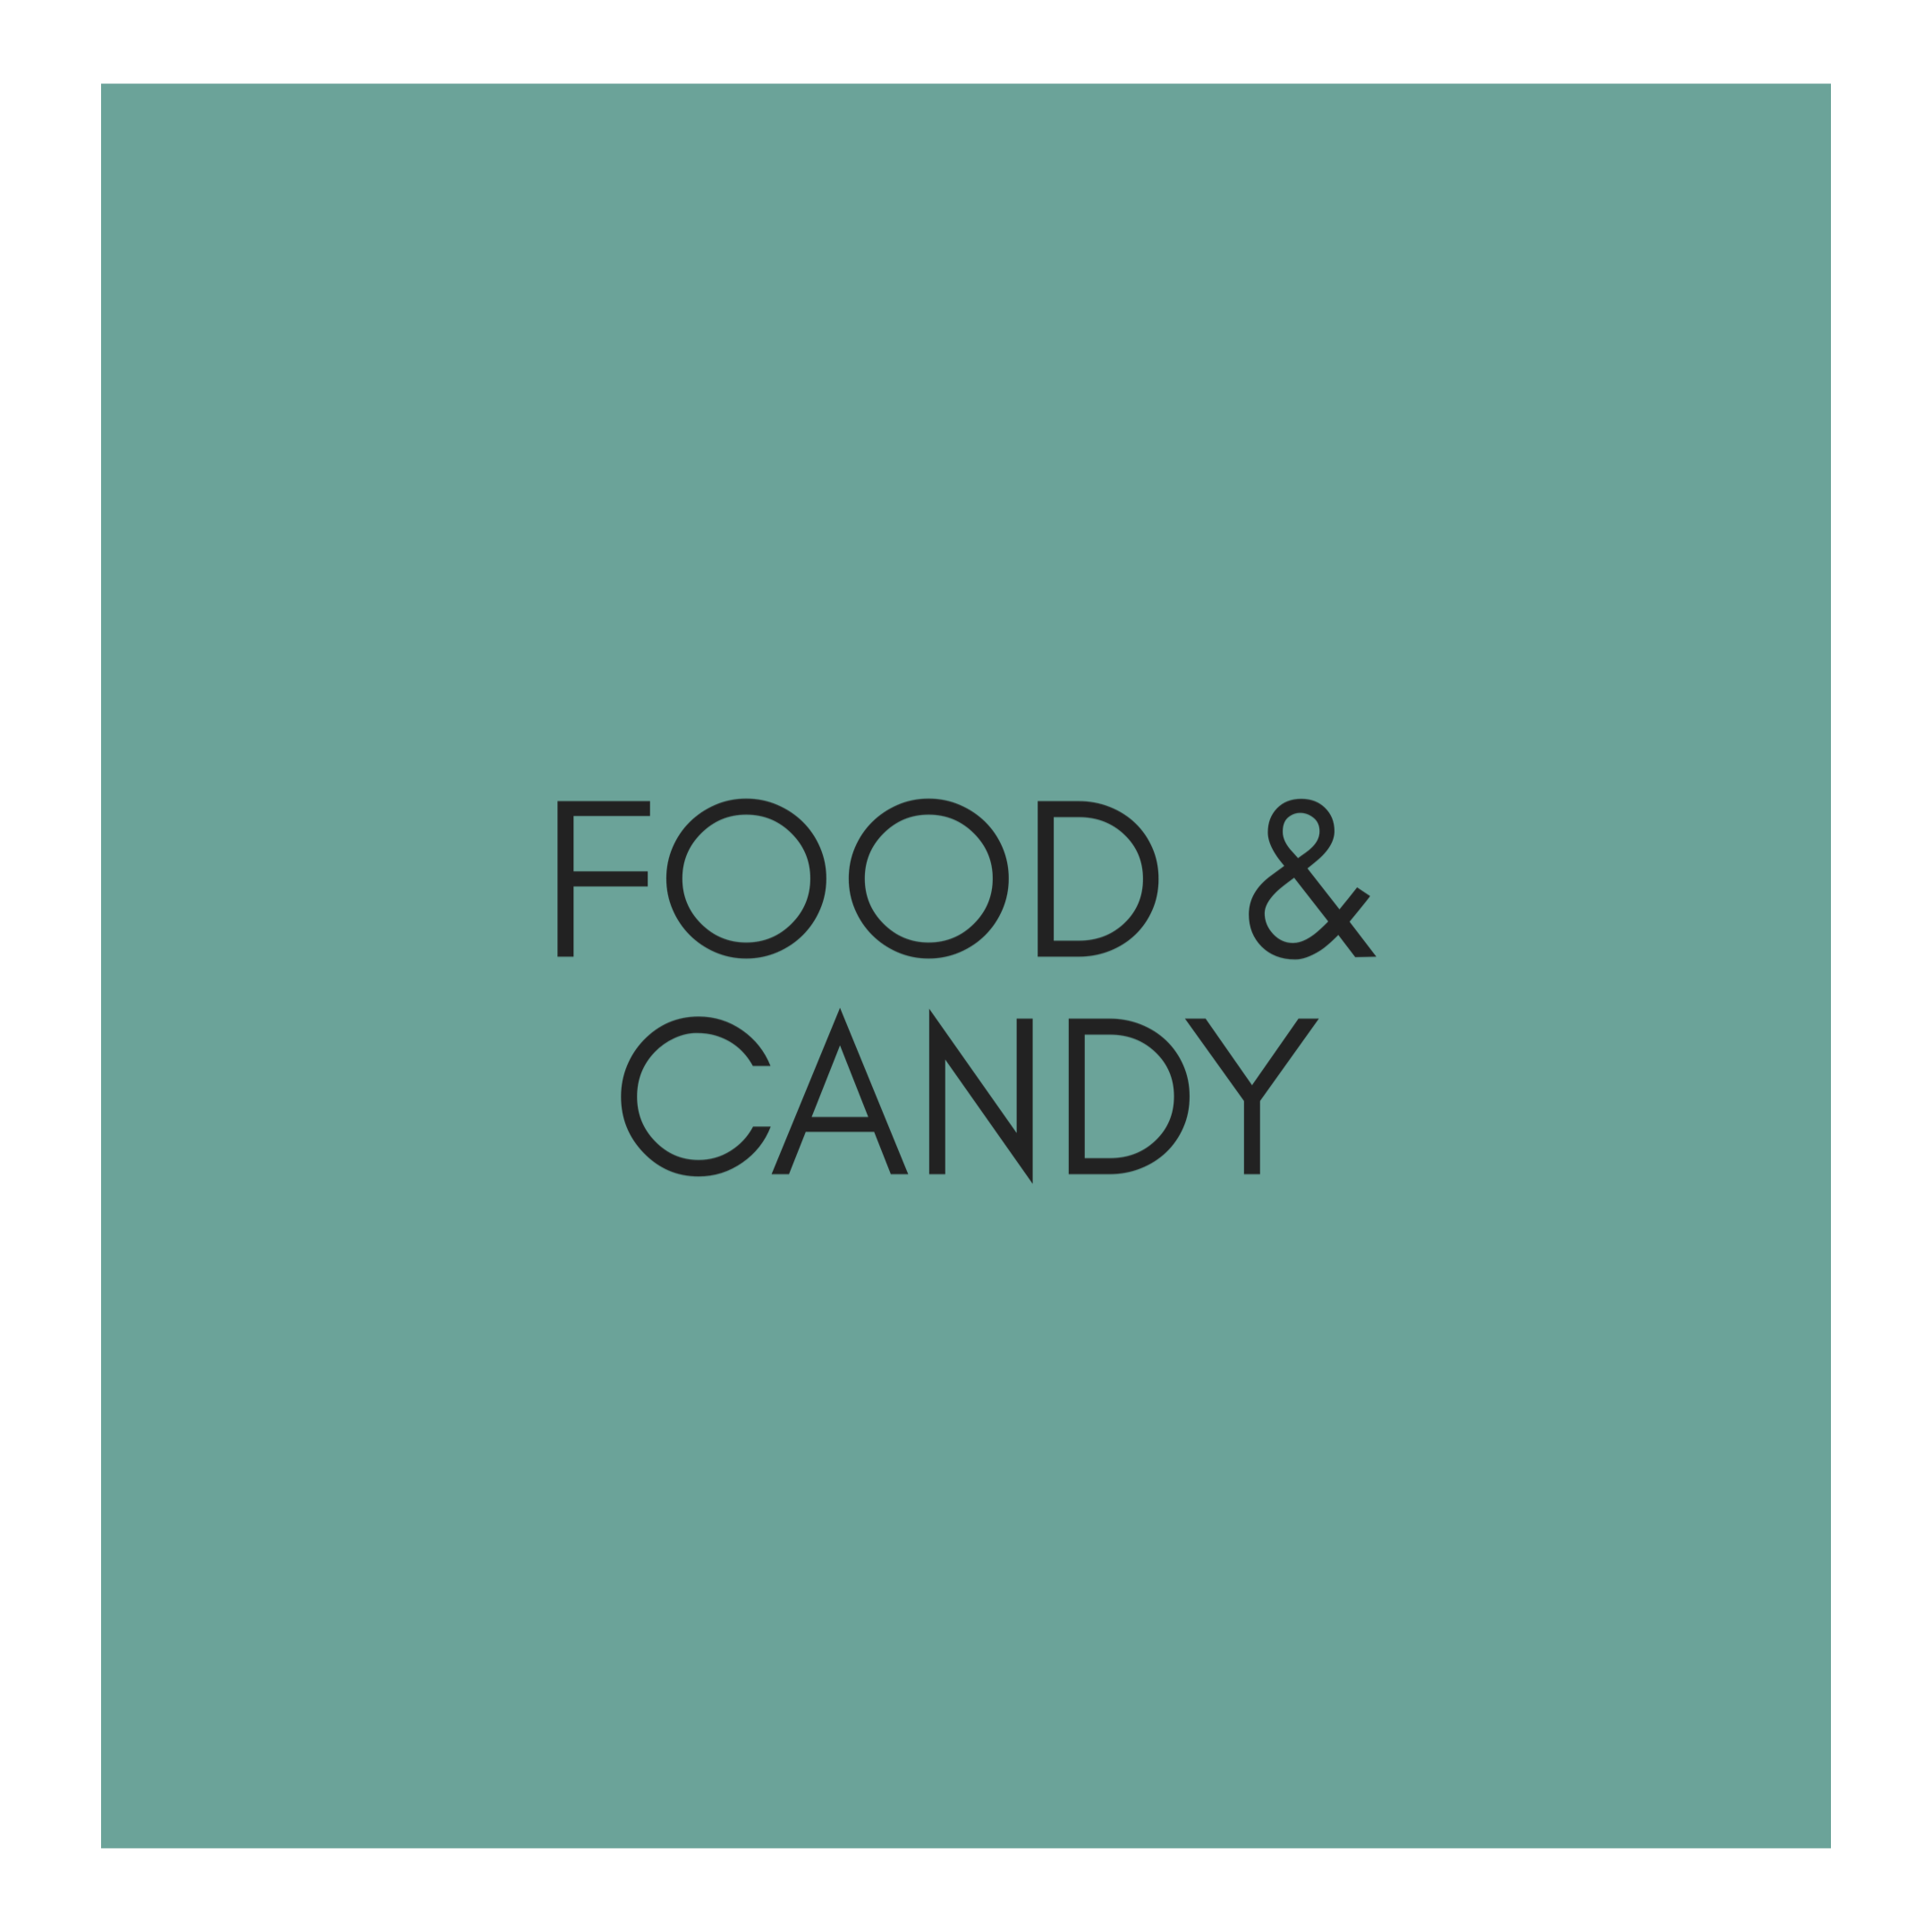 Food & Candy